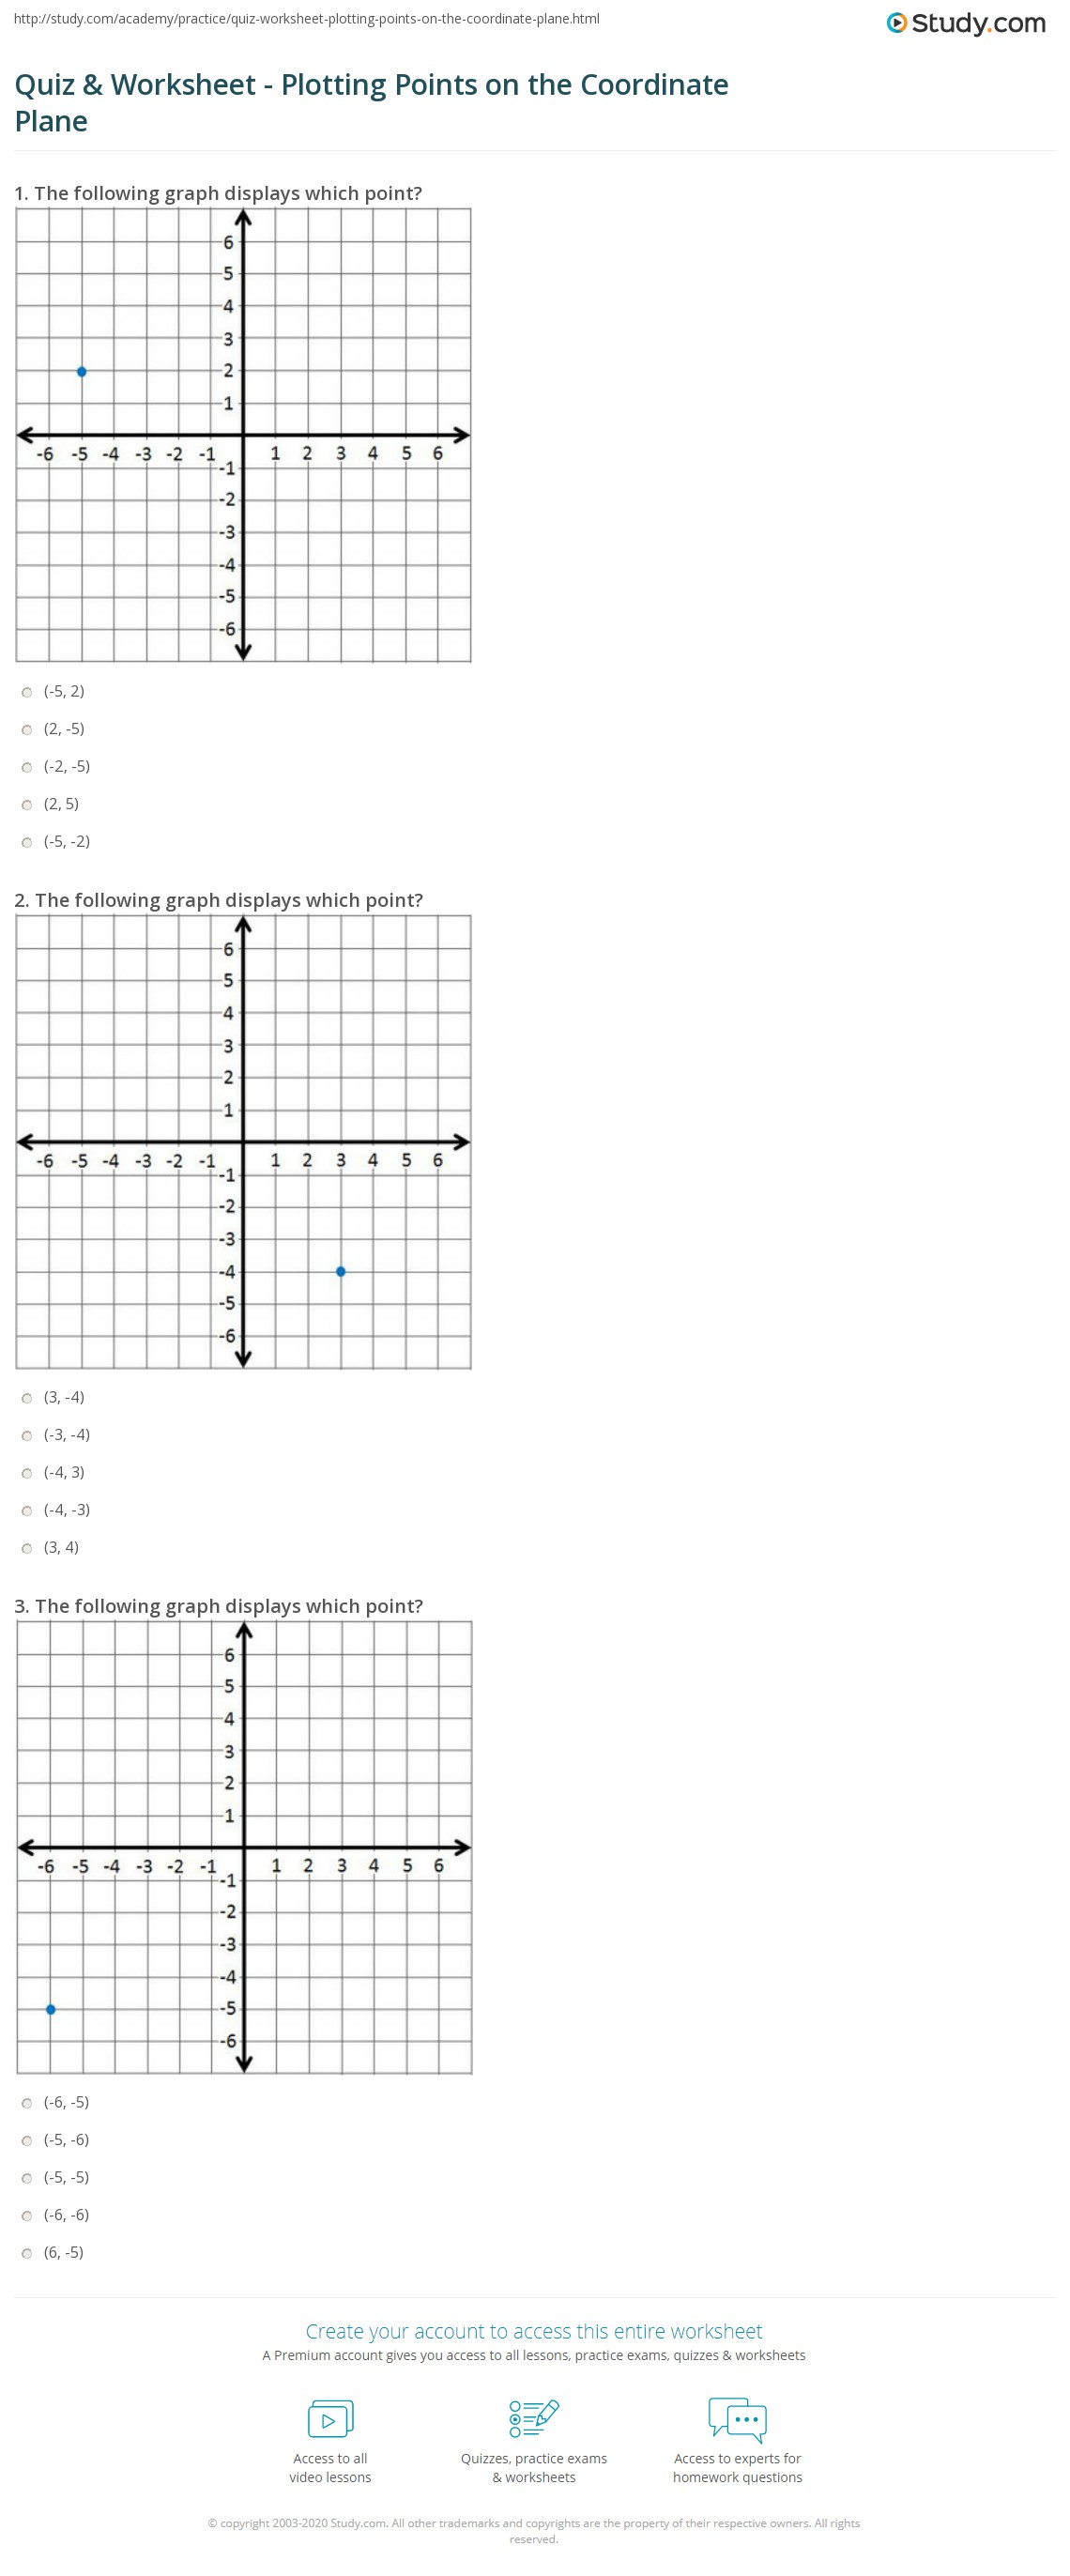 Worksheets Graphing Points On A Coordinate Plane Worksheet quiz worksheet plotting points on the coordinate plane study com print worksheet